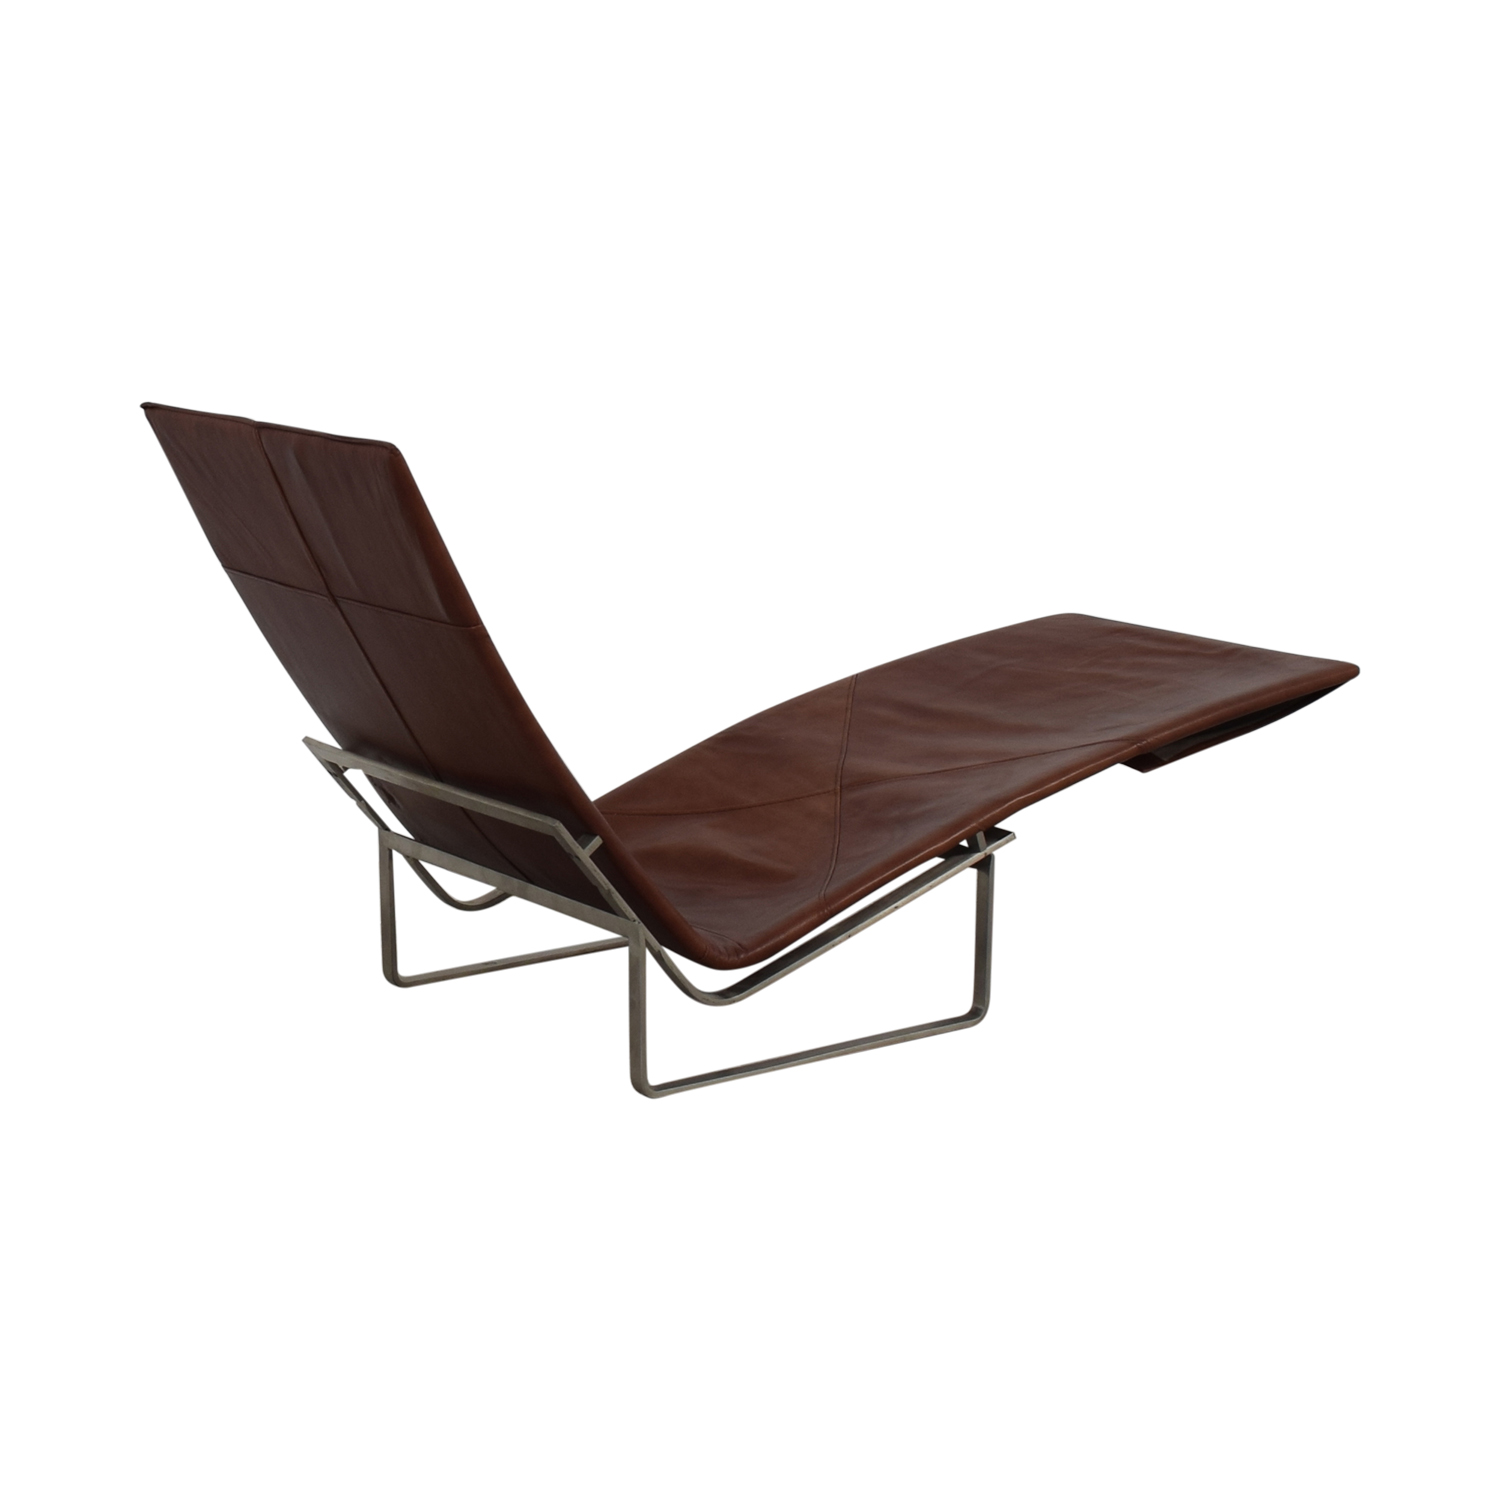 Kardiel Kardiel PK24 Lounge Chair for sale